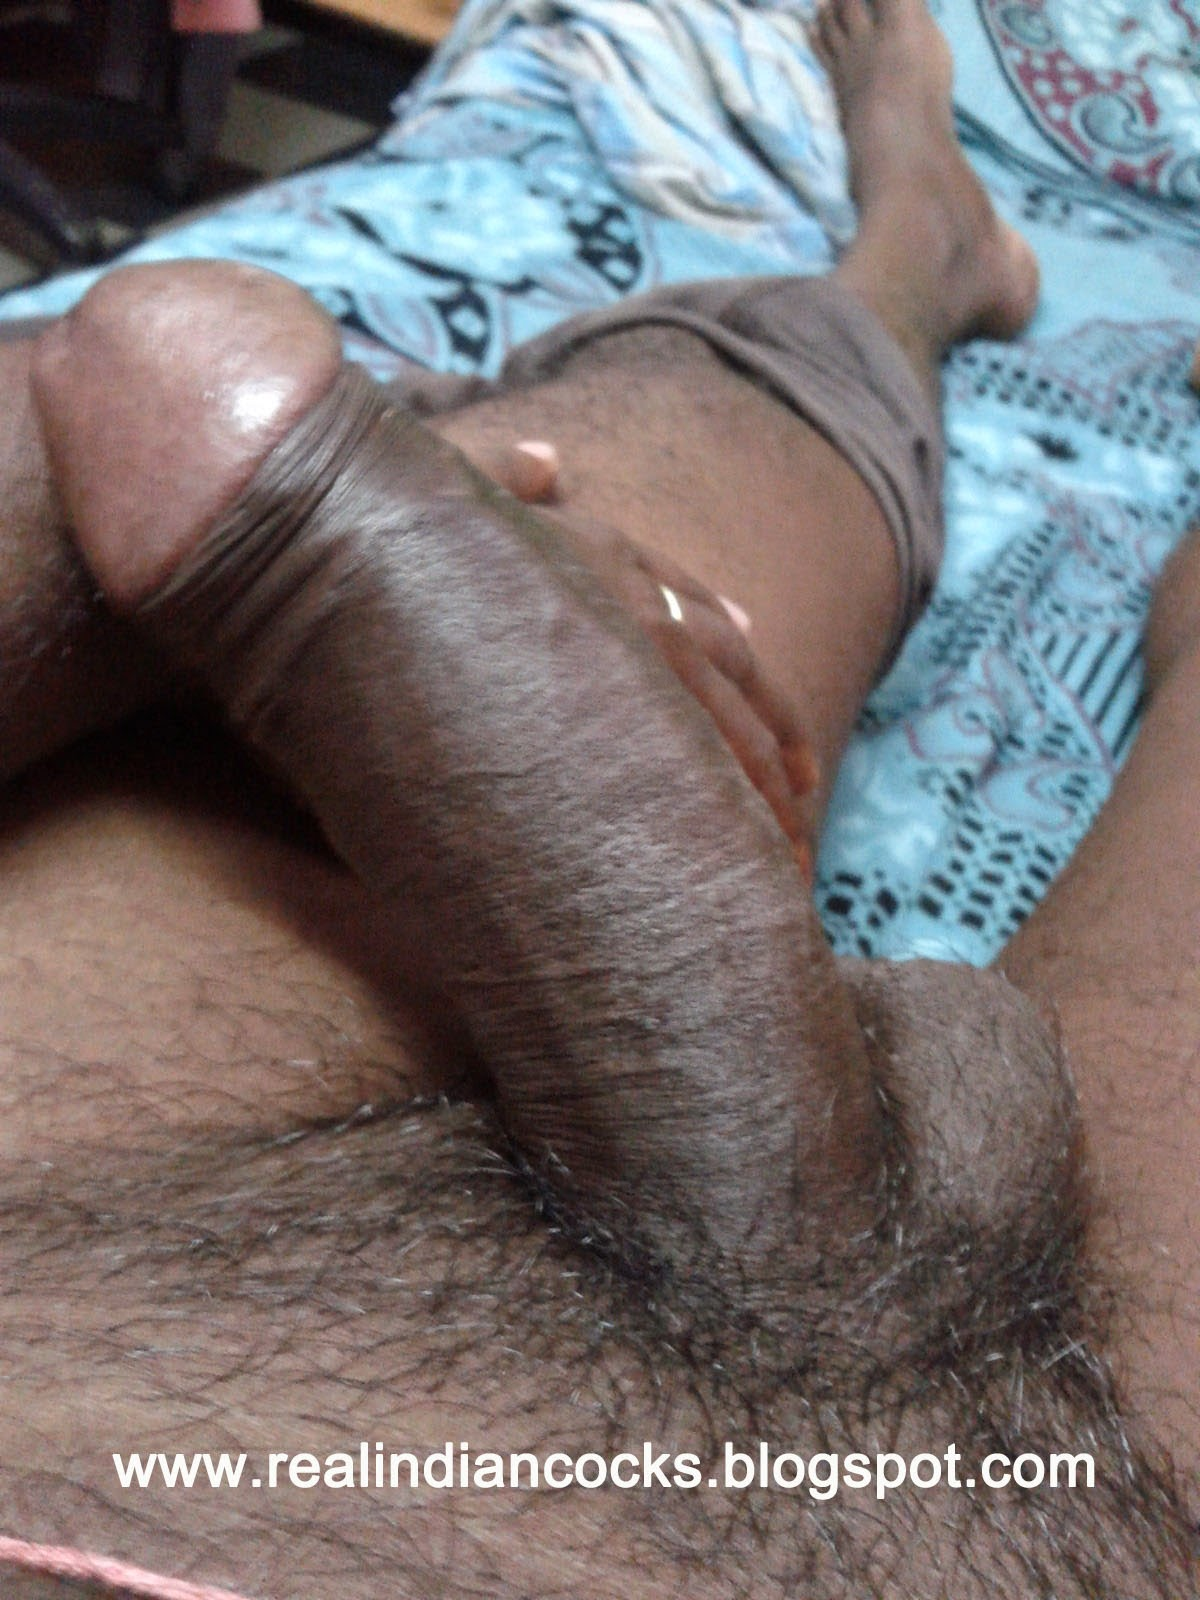 Desi Indian Pakistani Bangla Srilankan Nepali Desi Cock -5850